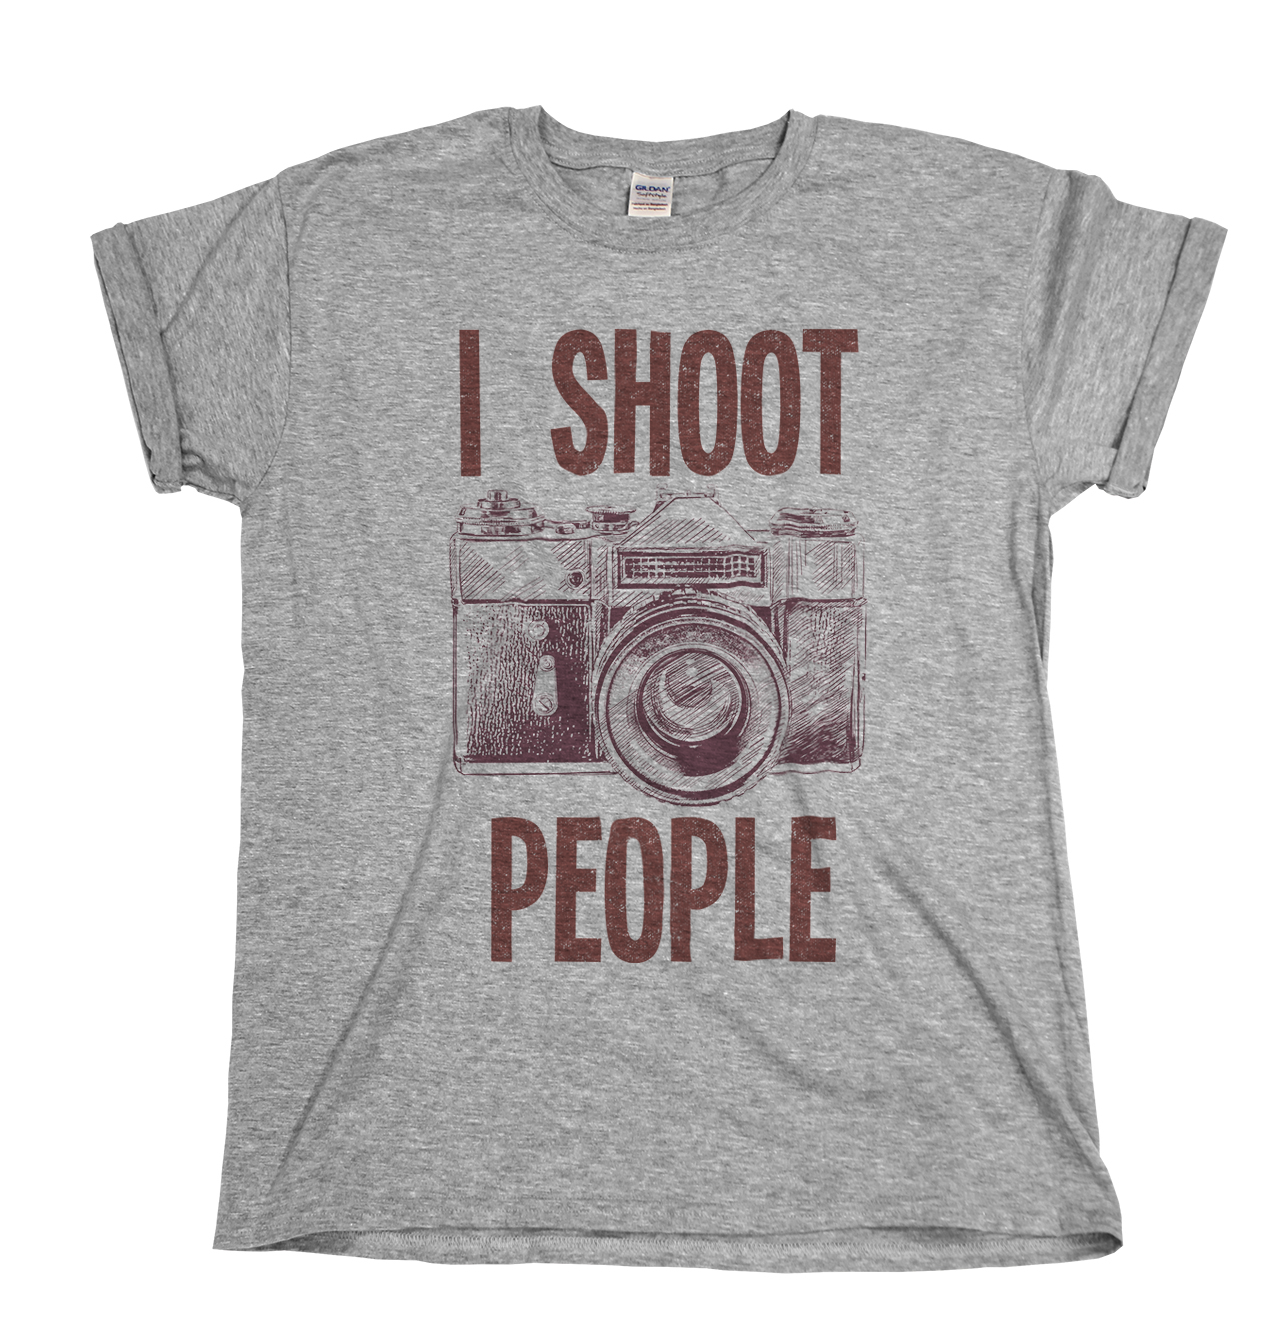 afc17edc I Shoot People Photographer Mens/Ladies T-Shirt Christmas Gift Cool Casual  pride t